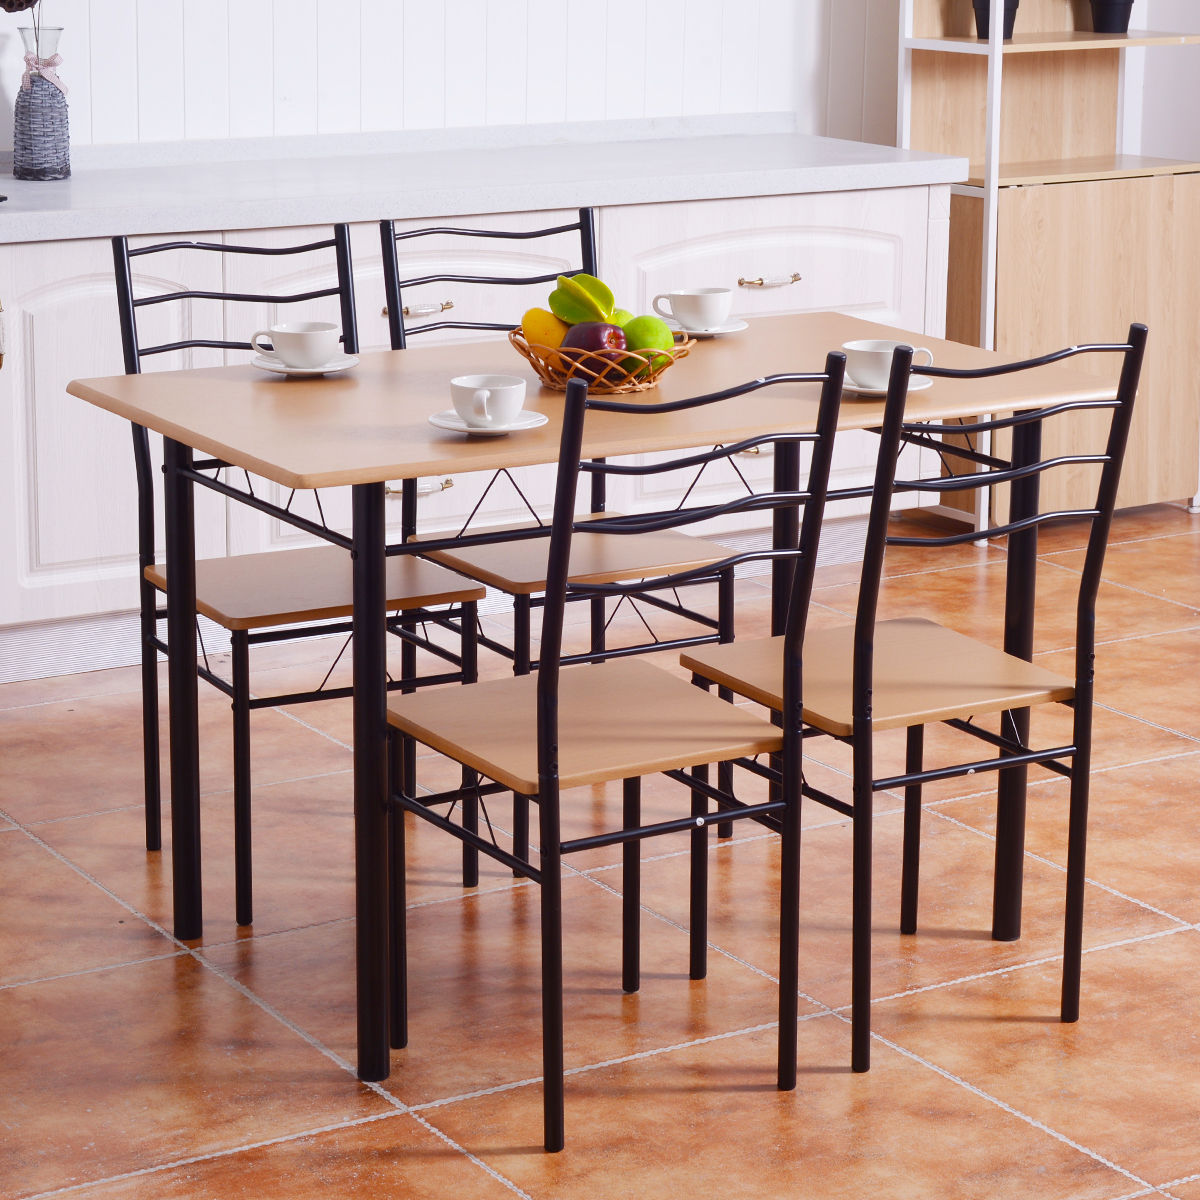 Breakfast Chairs Costway 5 Piece Dining Table Set With 4 Chairs Wood Metal Kitchen Breakfast Furniture